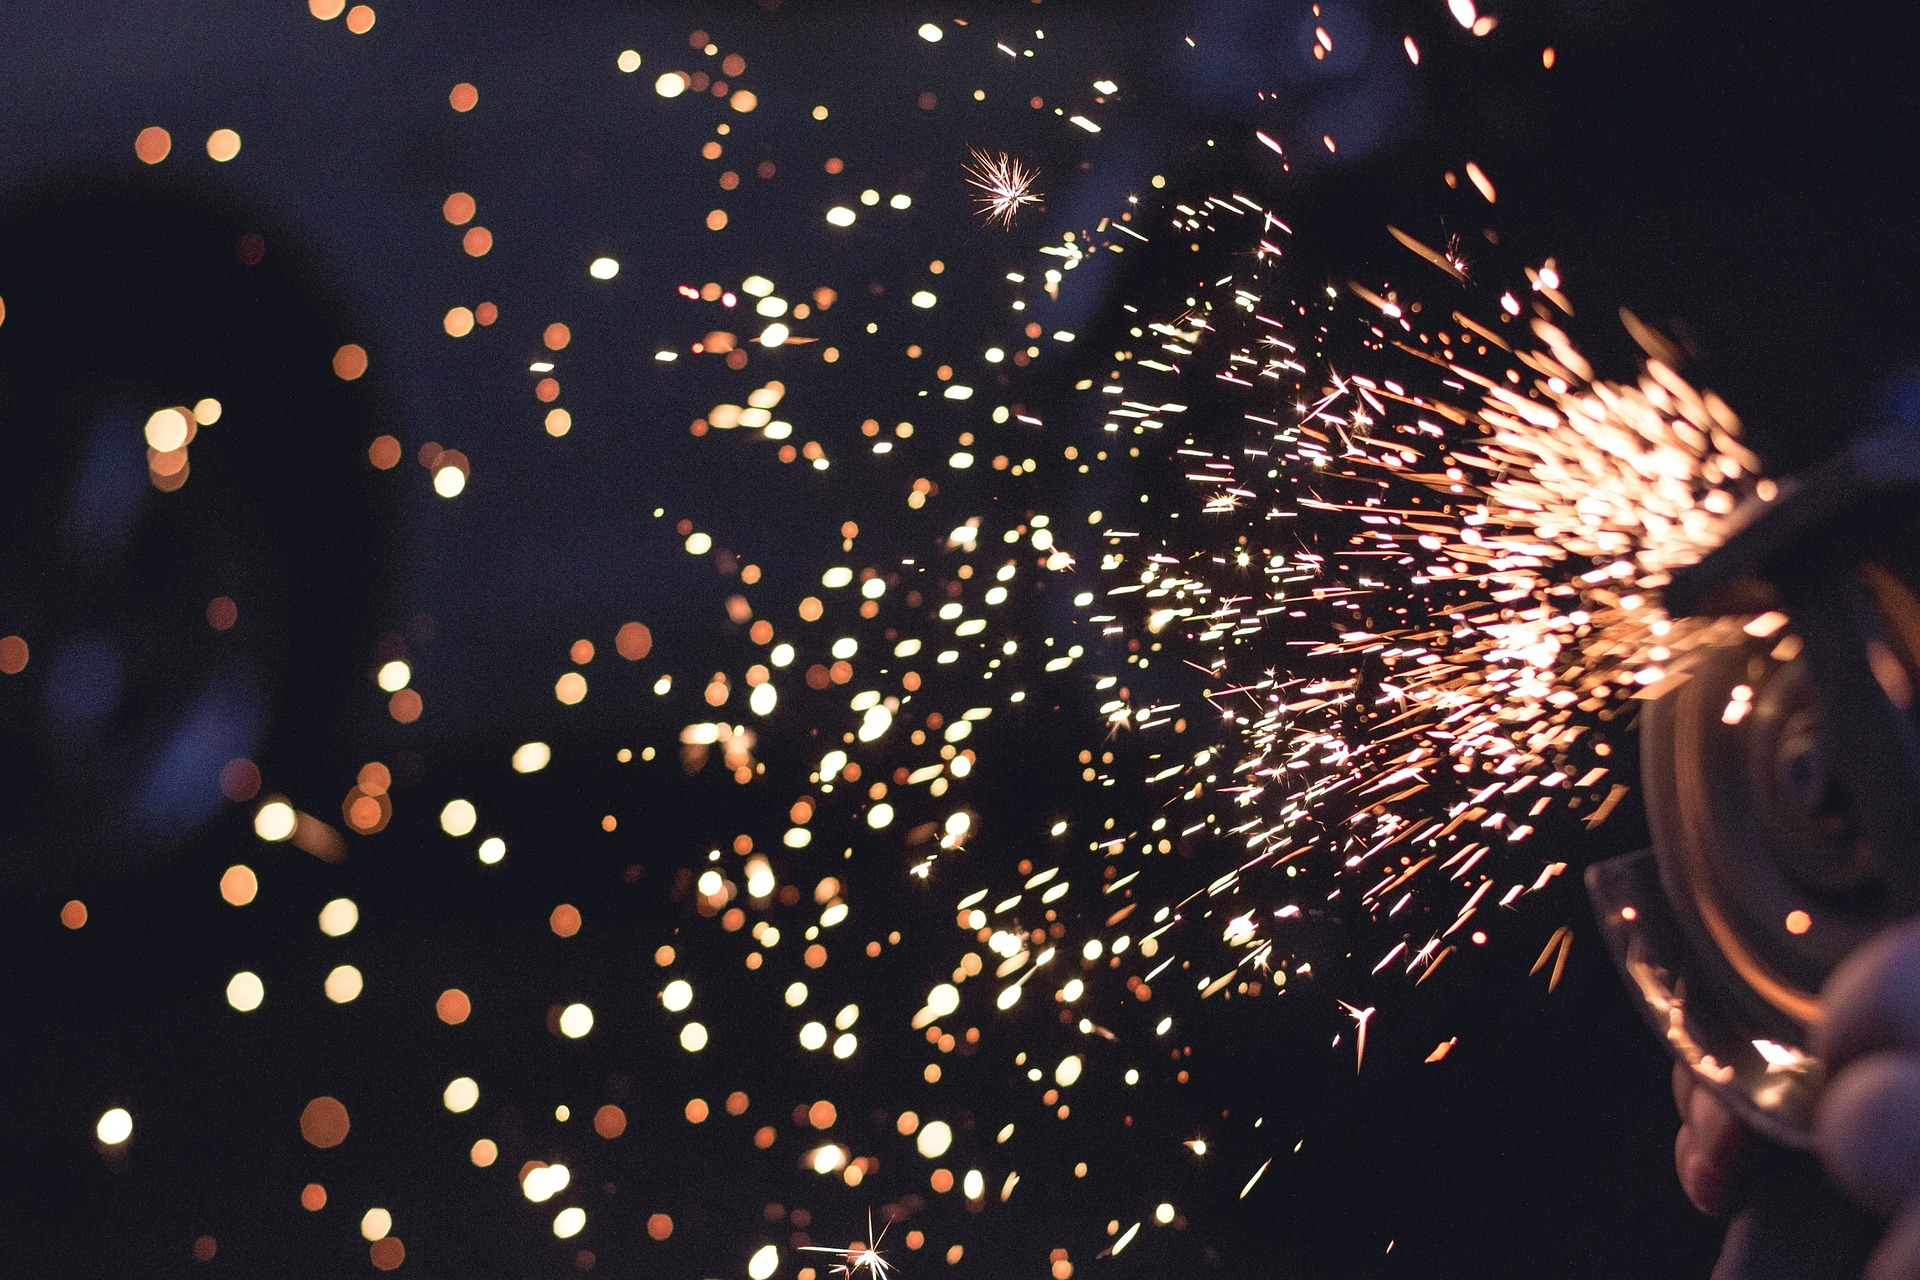 sparks from welder manufacturing metal